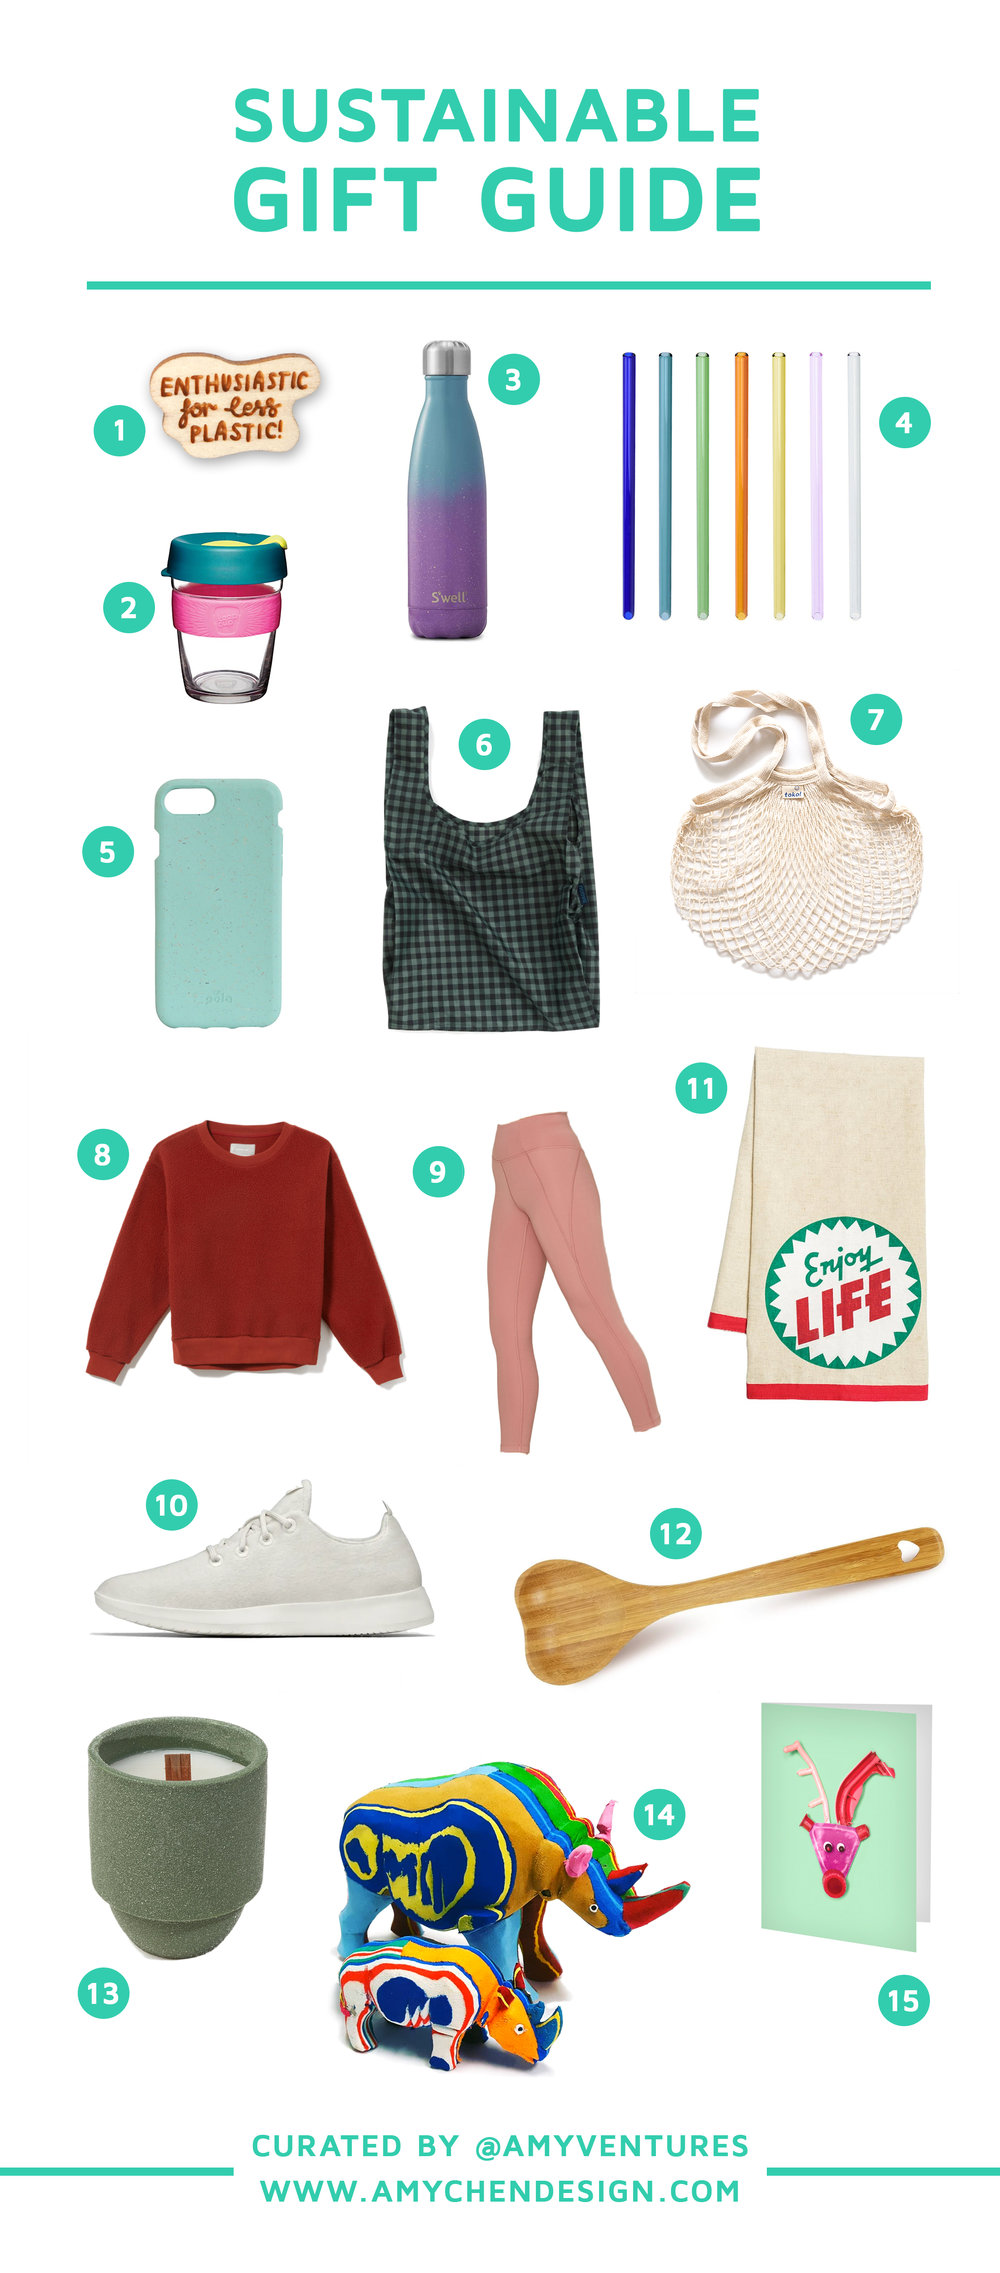 amy_chen_design_amyventures_sustainable_gift_guide_holiday_christmas.jpg